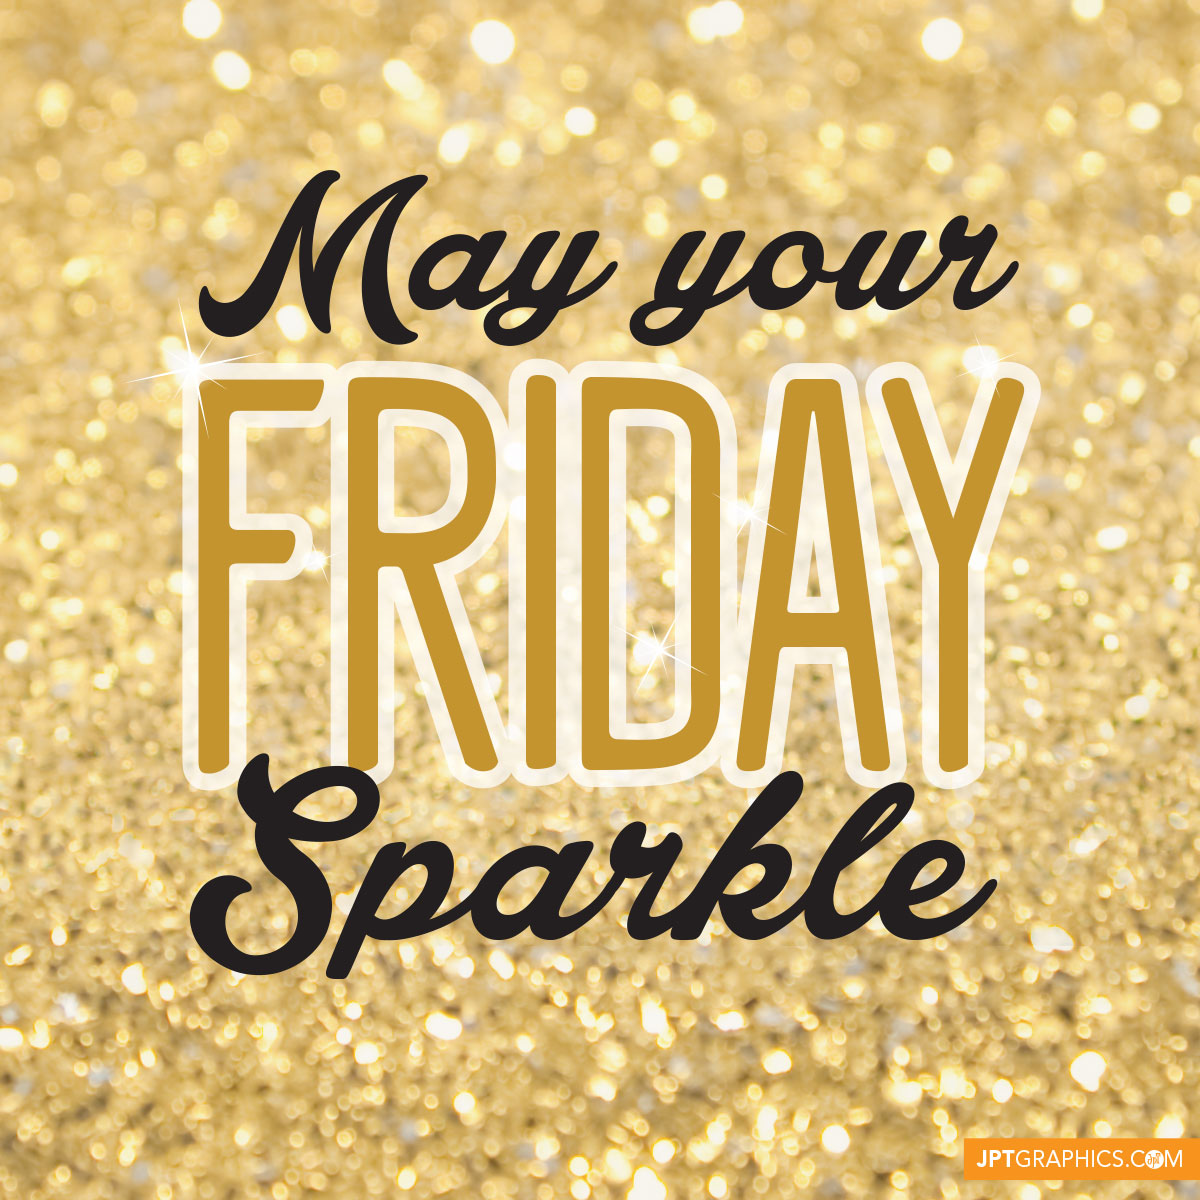 May your Friday sparkle!